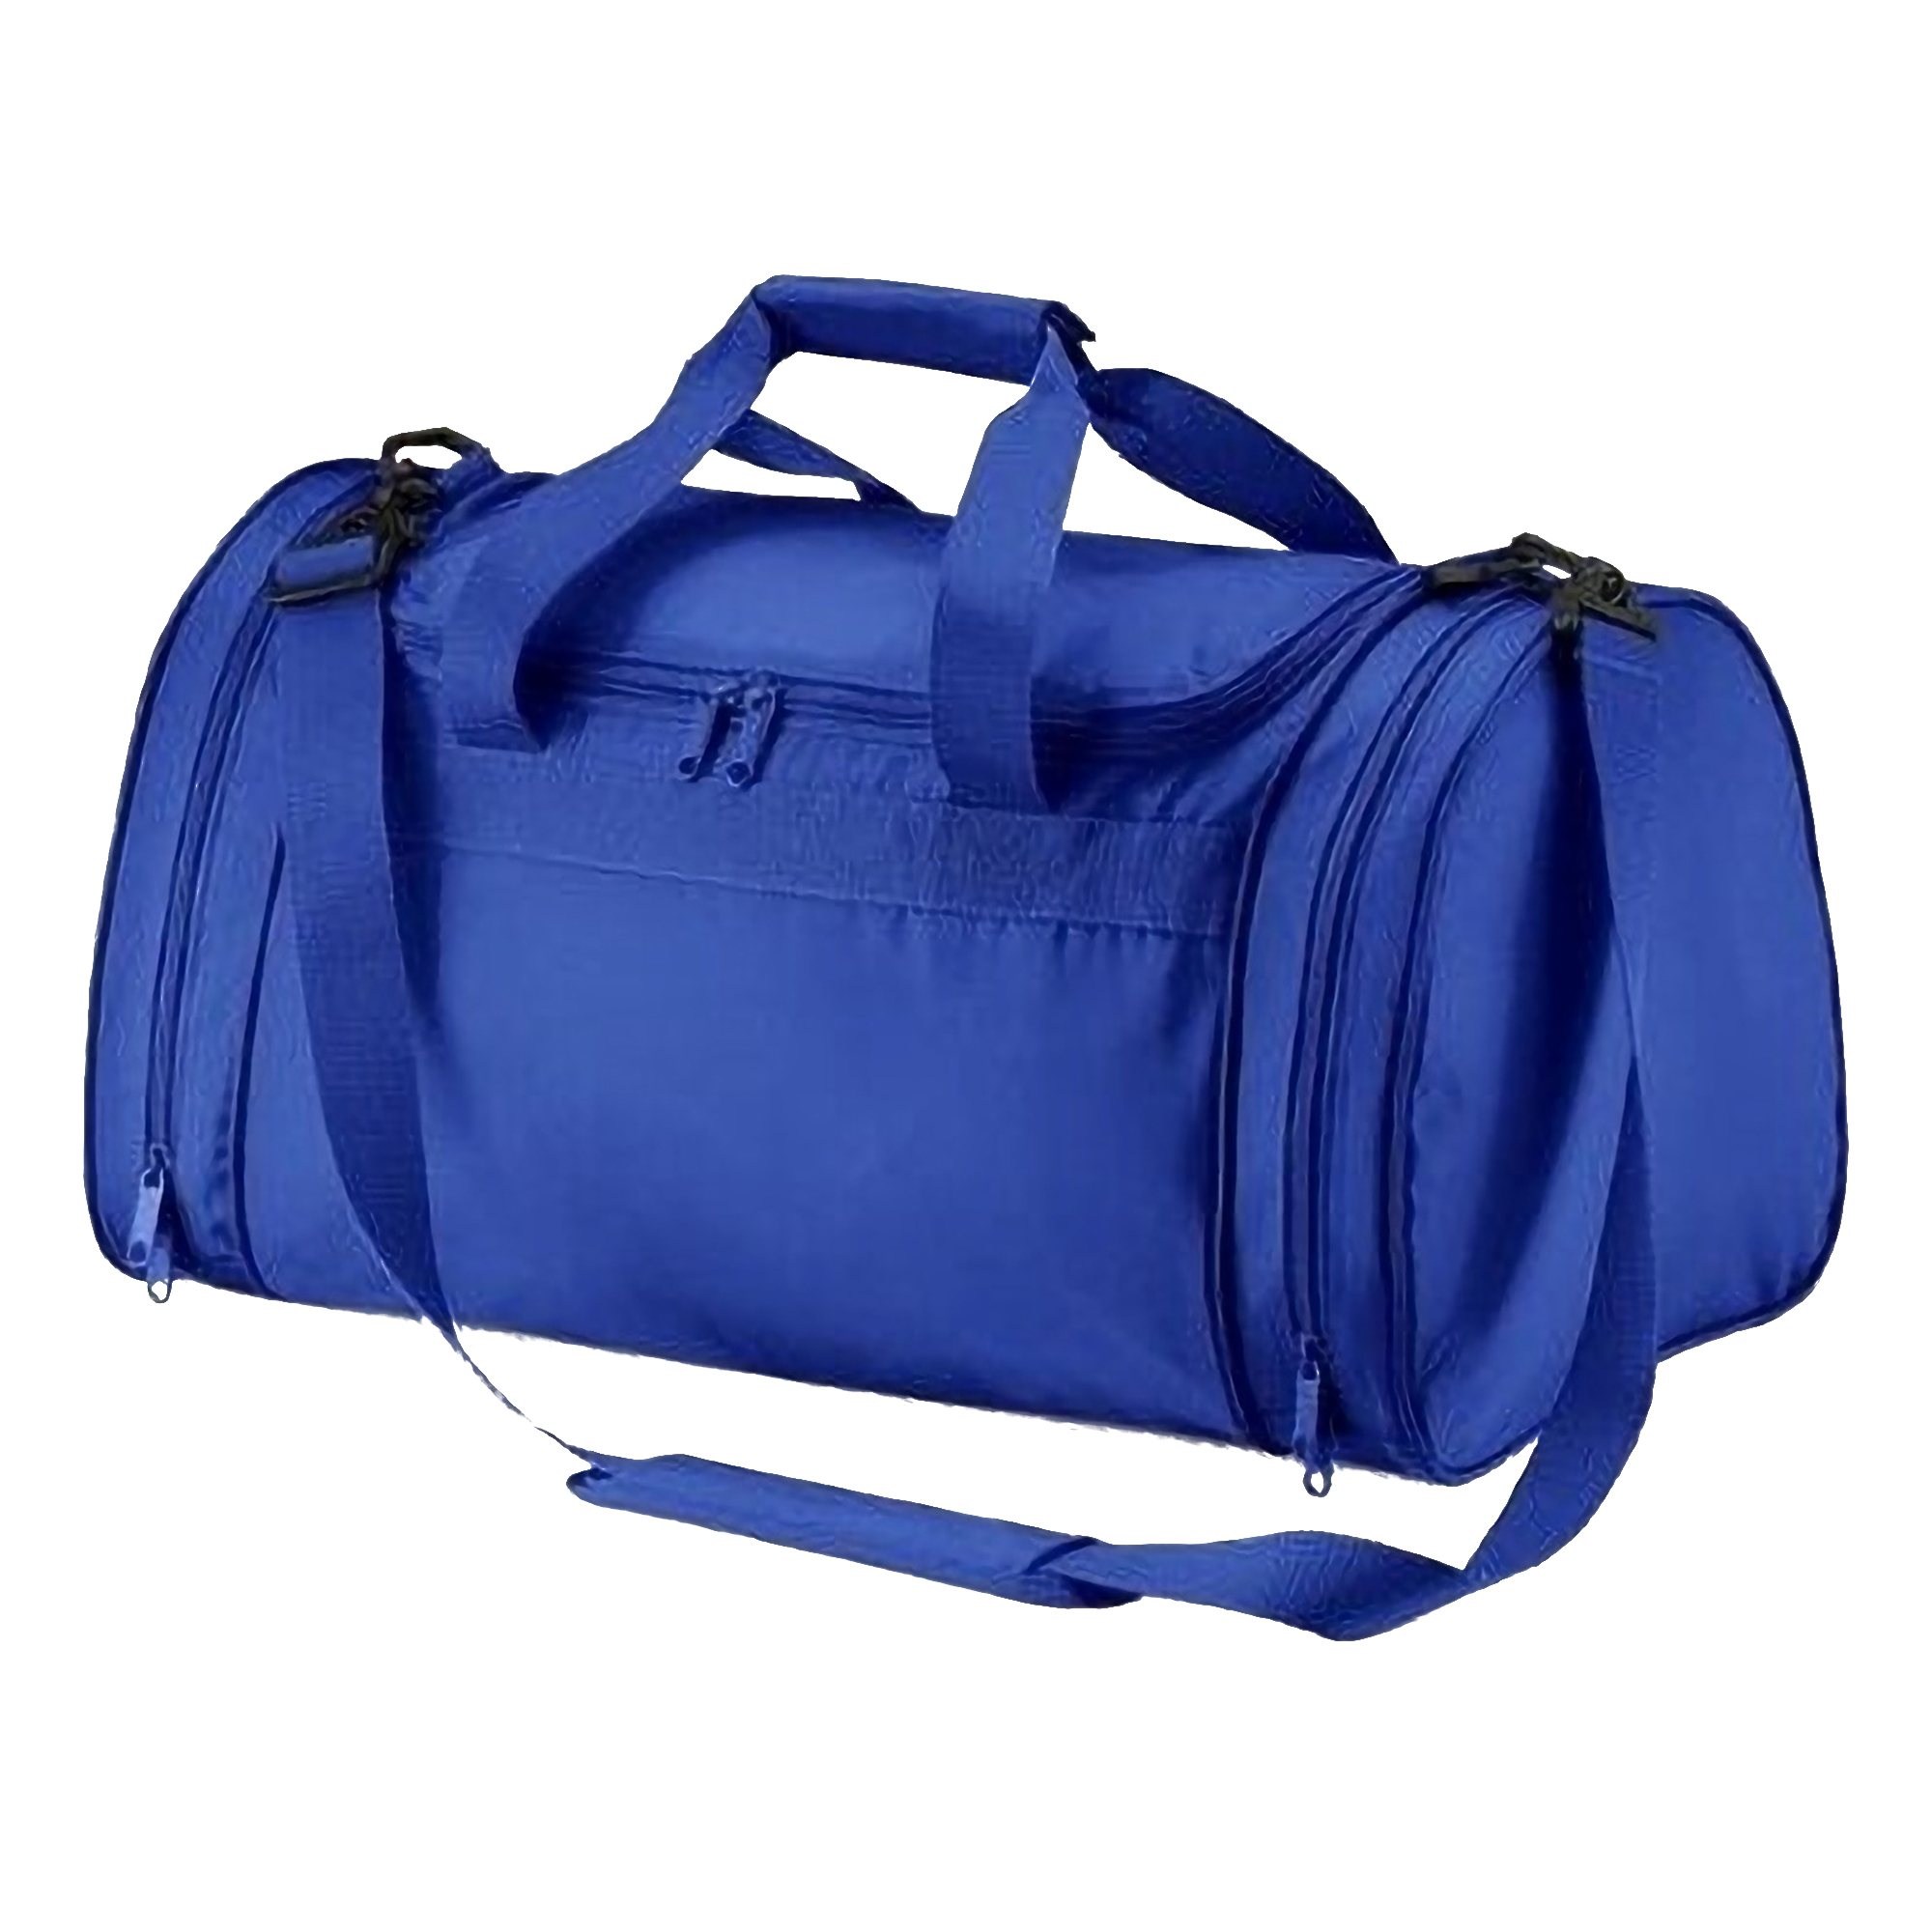 Quadra Sports Holdall Duffle Bag - 32 Litres (Pack of 2) (One Size) (Bright Royal)